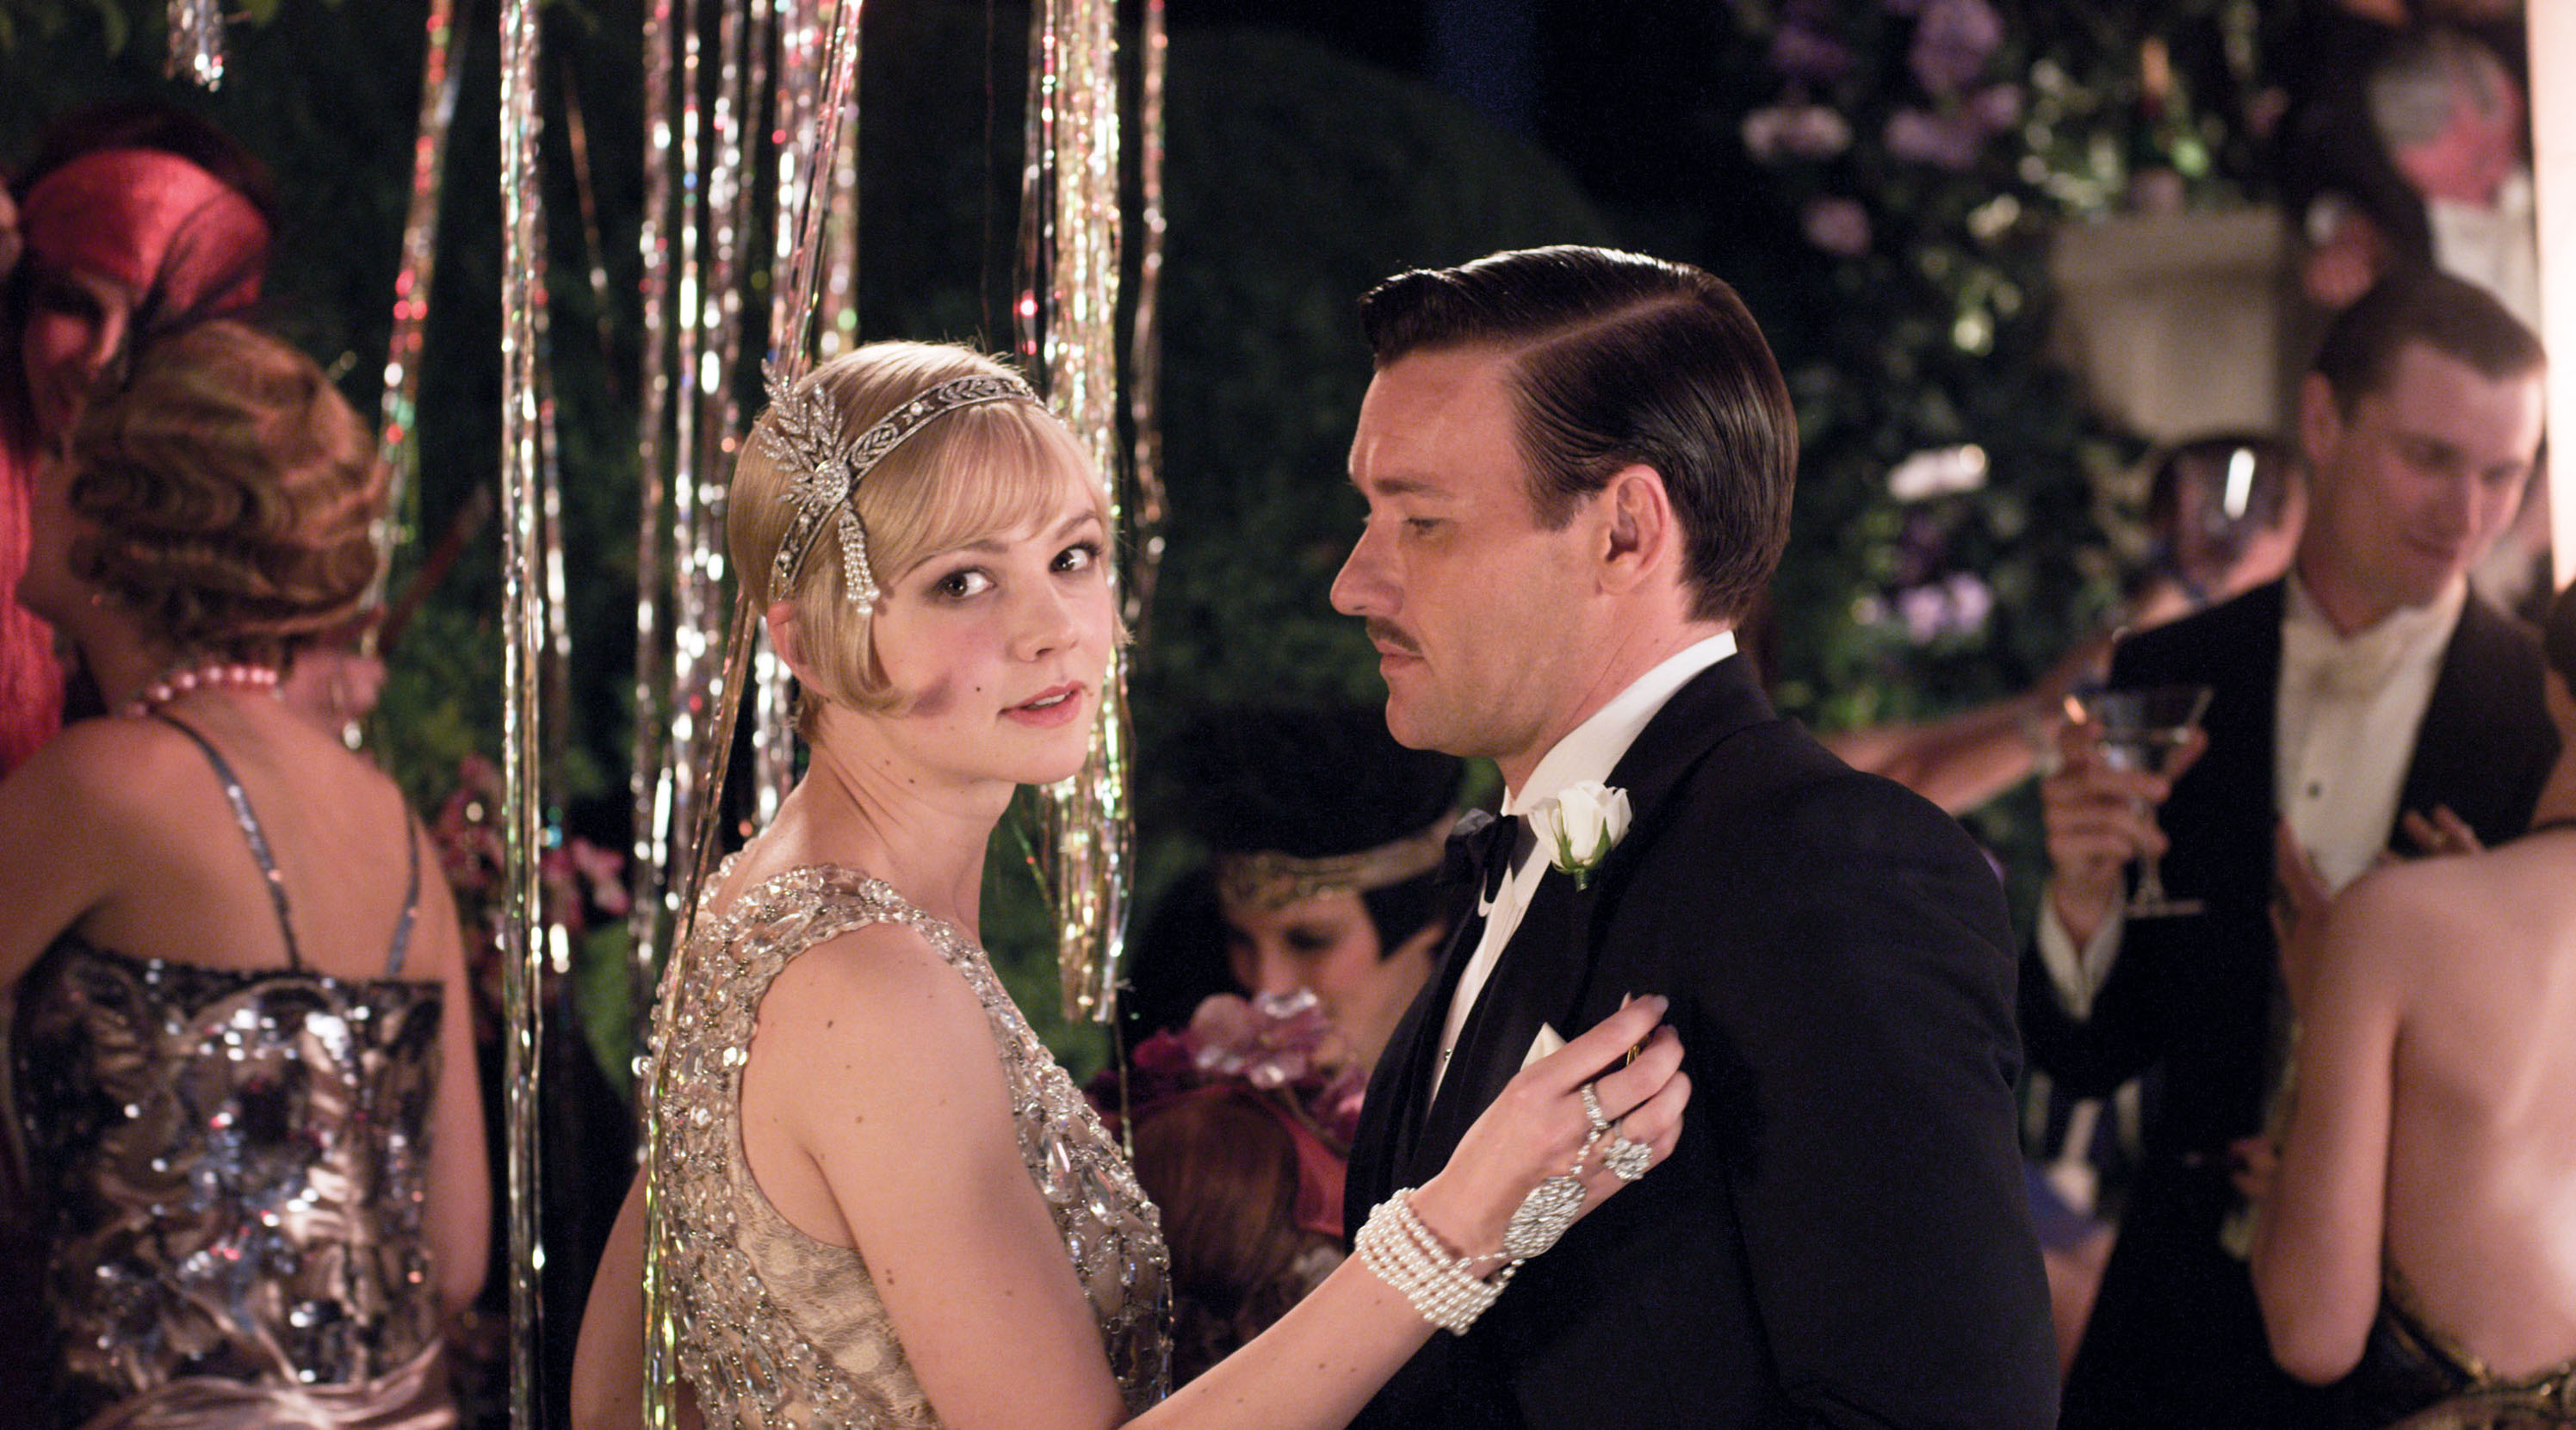 jewellery in movies The Great Gatsby (2013)